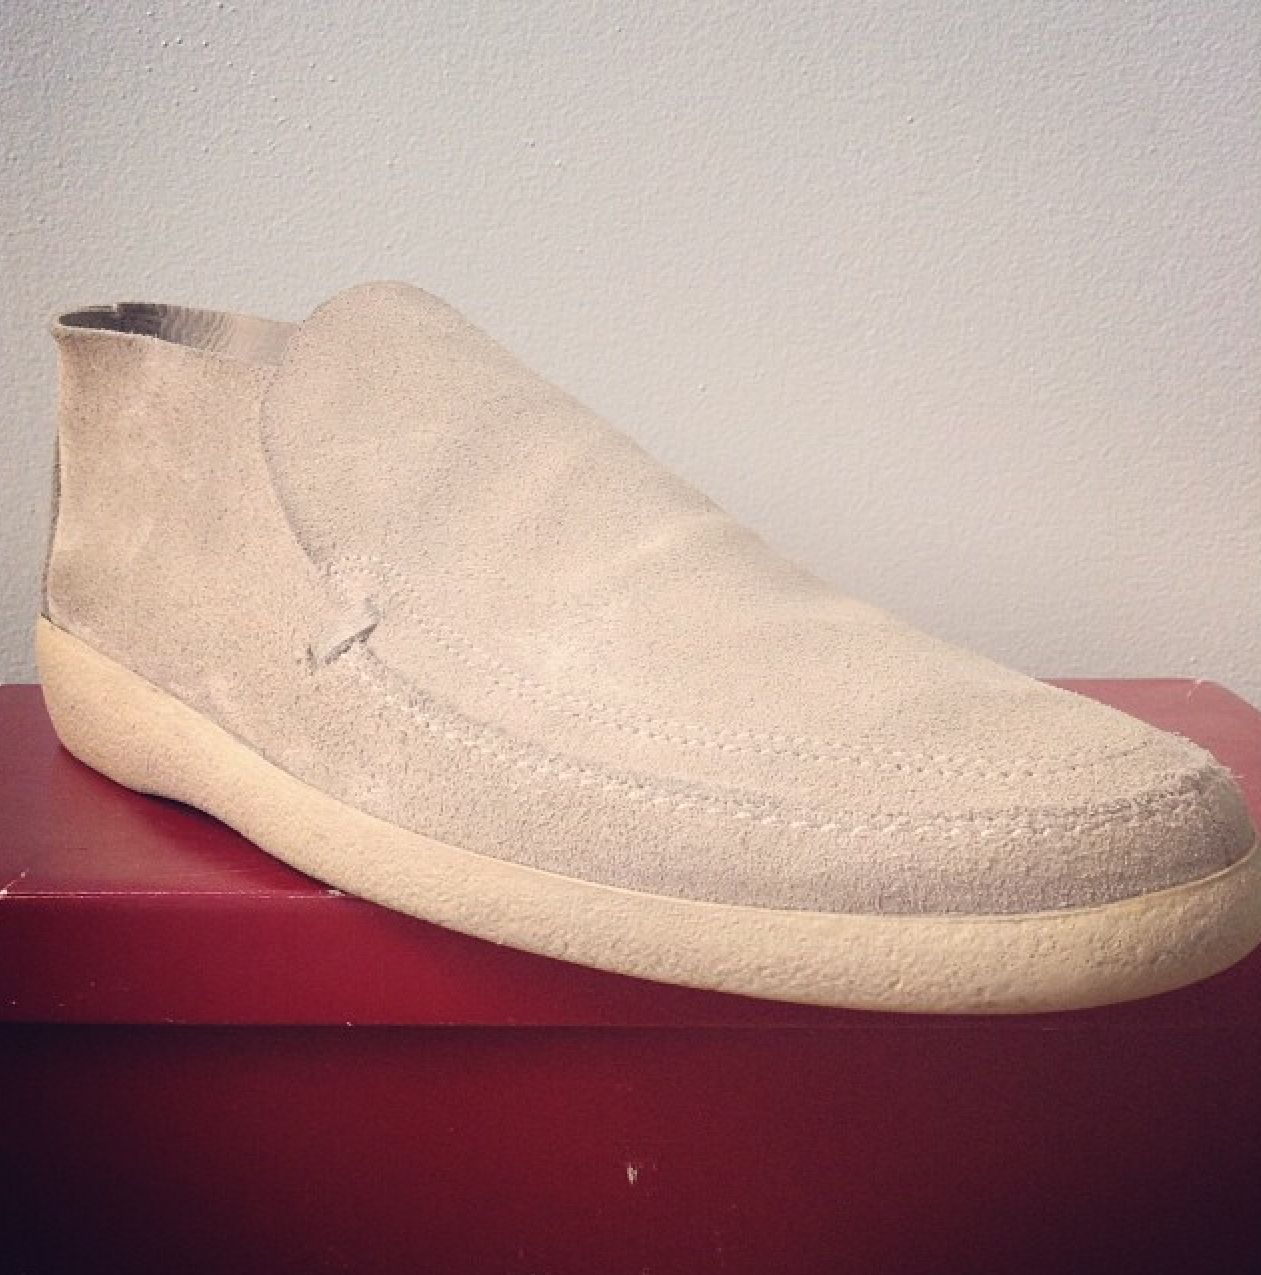 Vintage 80 S Bally Sunny S Suede Shoes Beige Bally Shoes Suede Shoes Bally